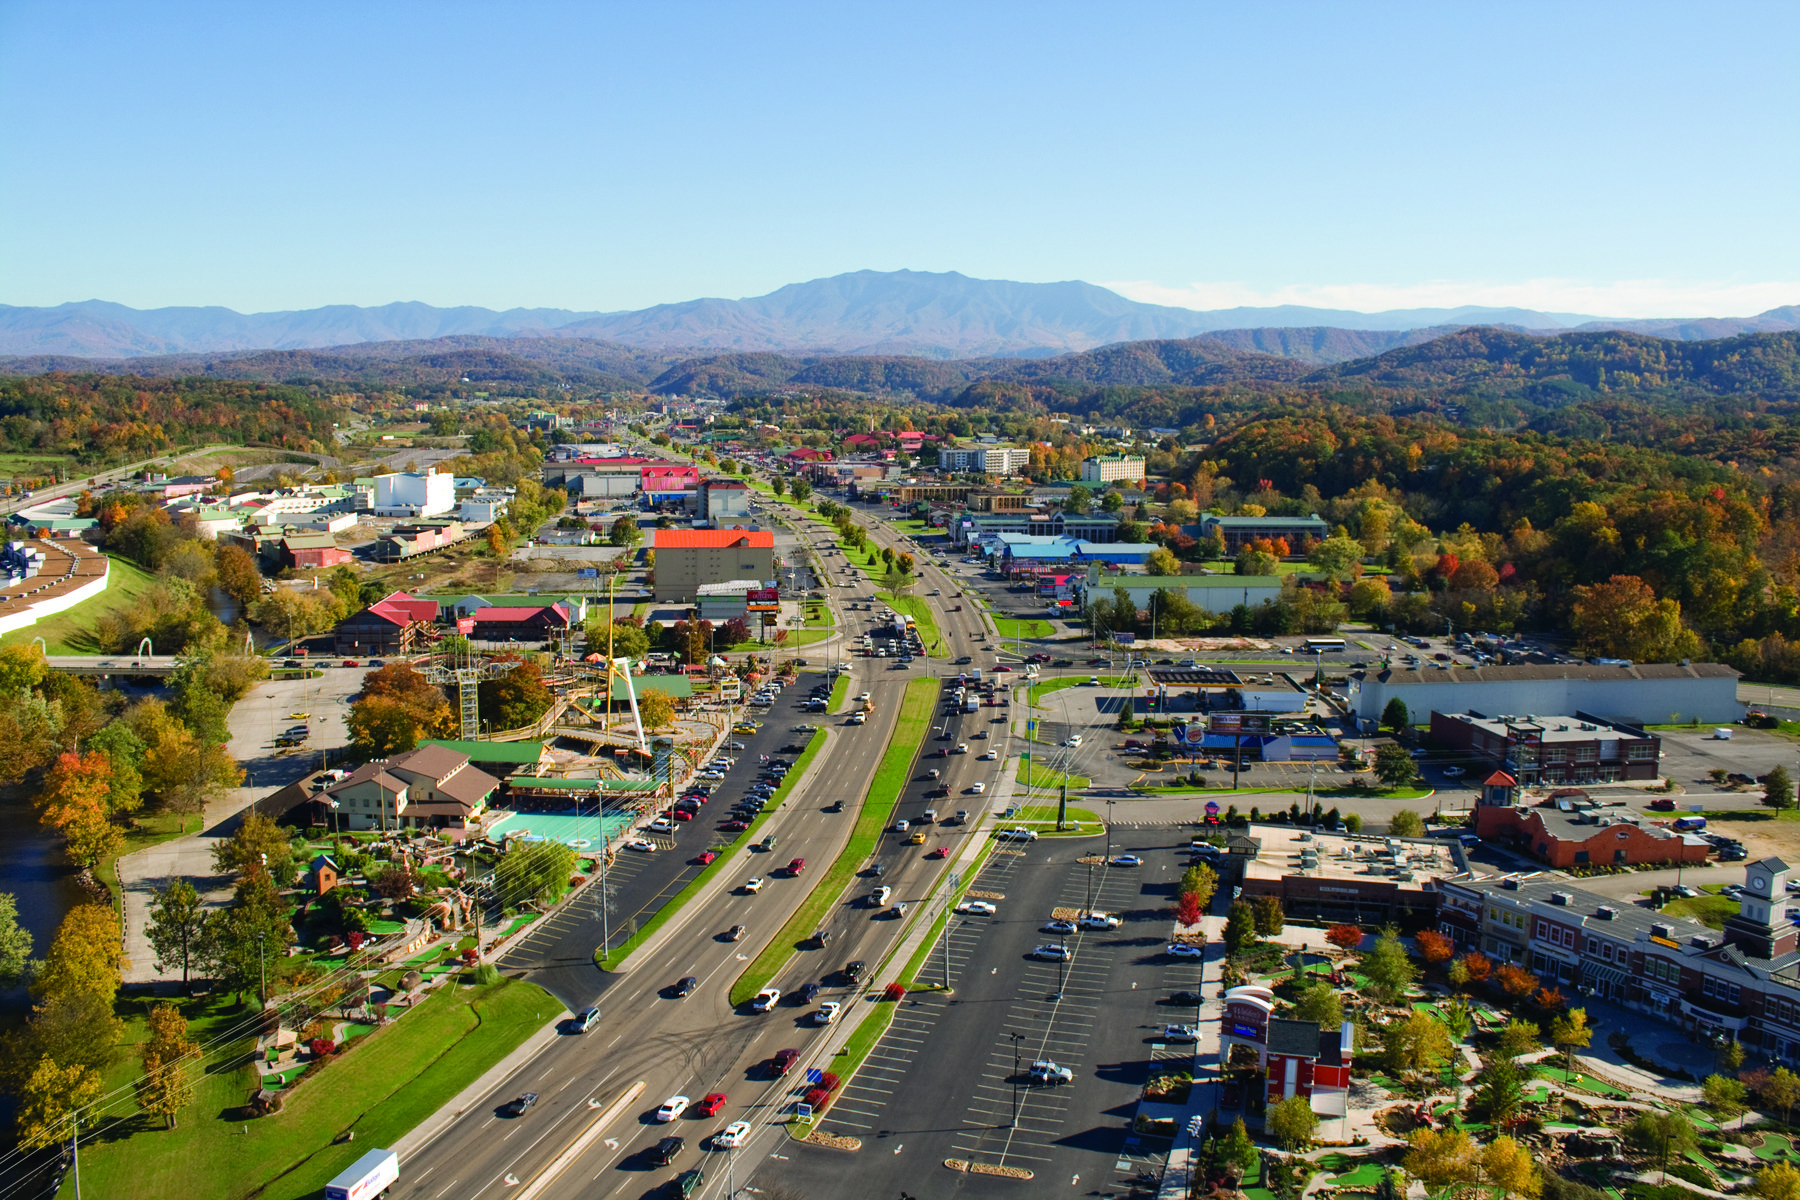 Pigeon Forge Aerial Photo